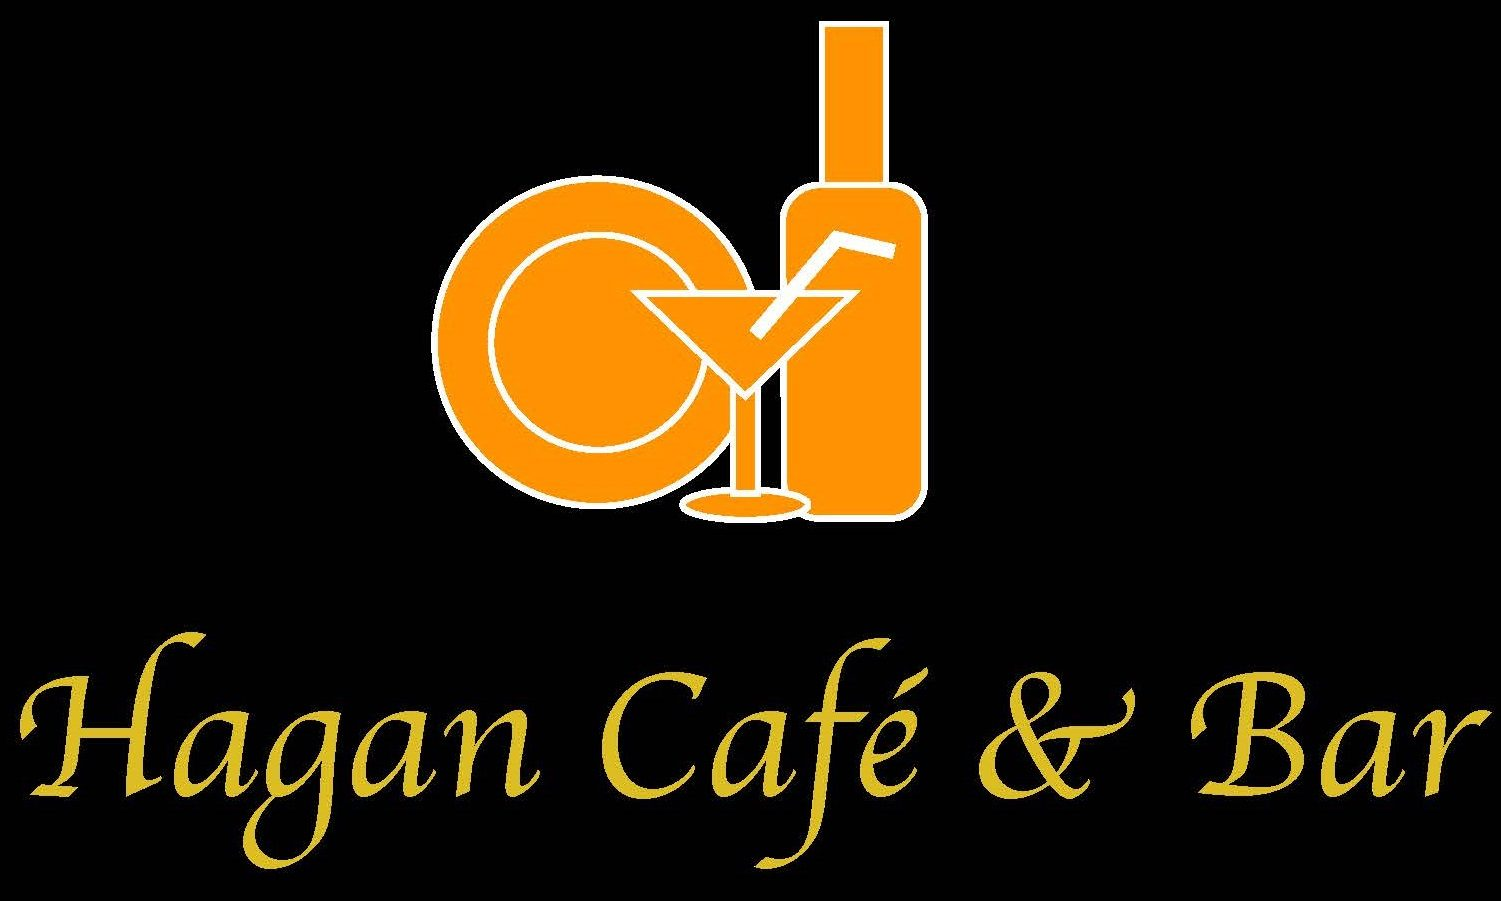 Hagan Cafe